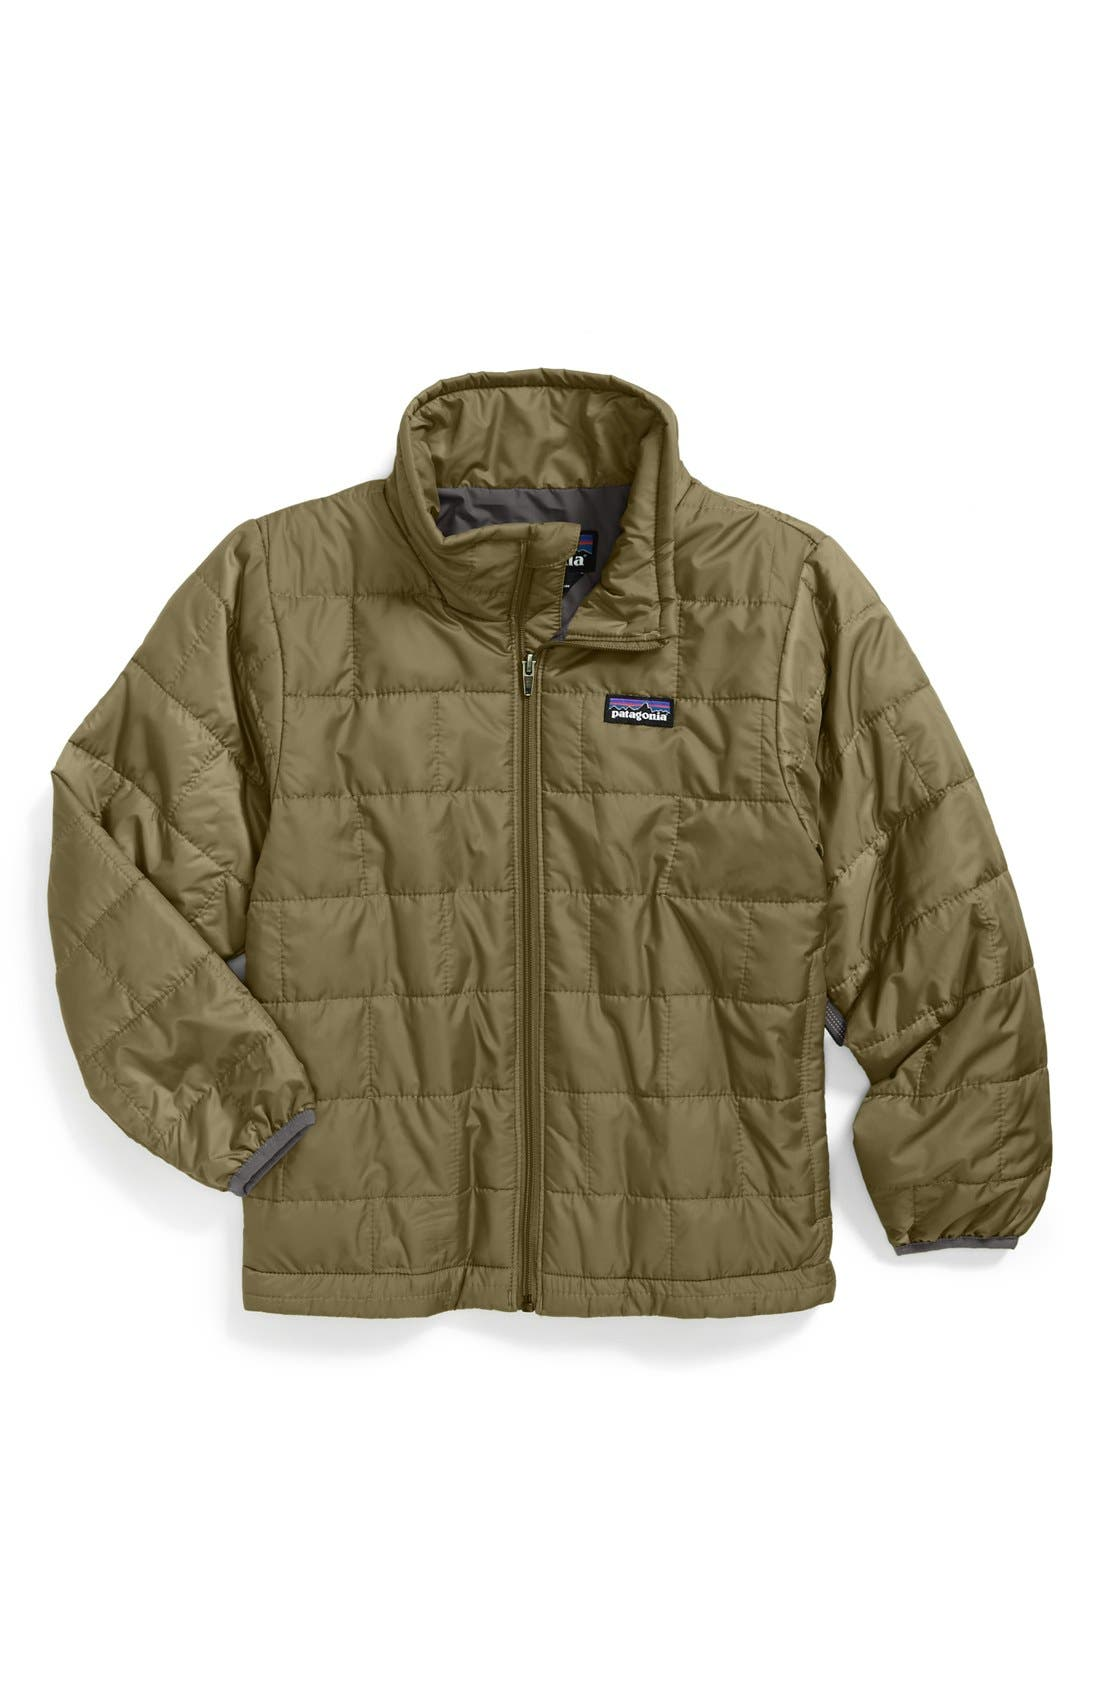 Alternate Image 1 Selected - Patagonia 'Nano Puff' Wind Resistant Water Resistant Jacket (Little Boys & Big Boys)